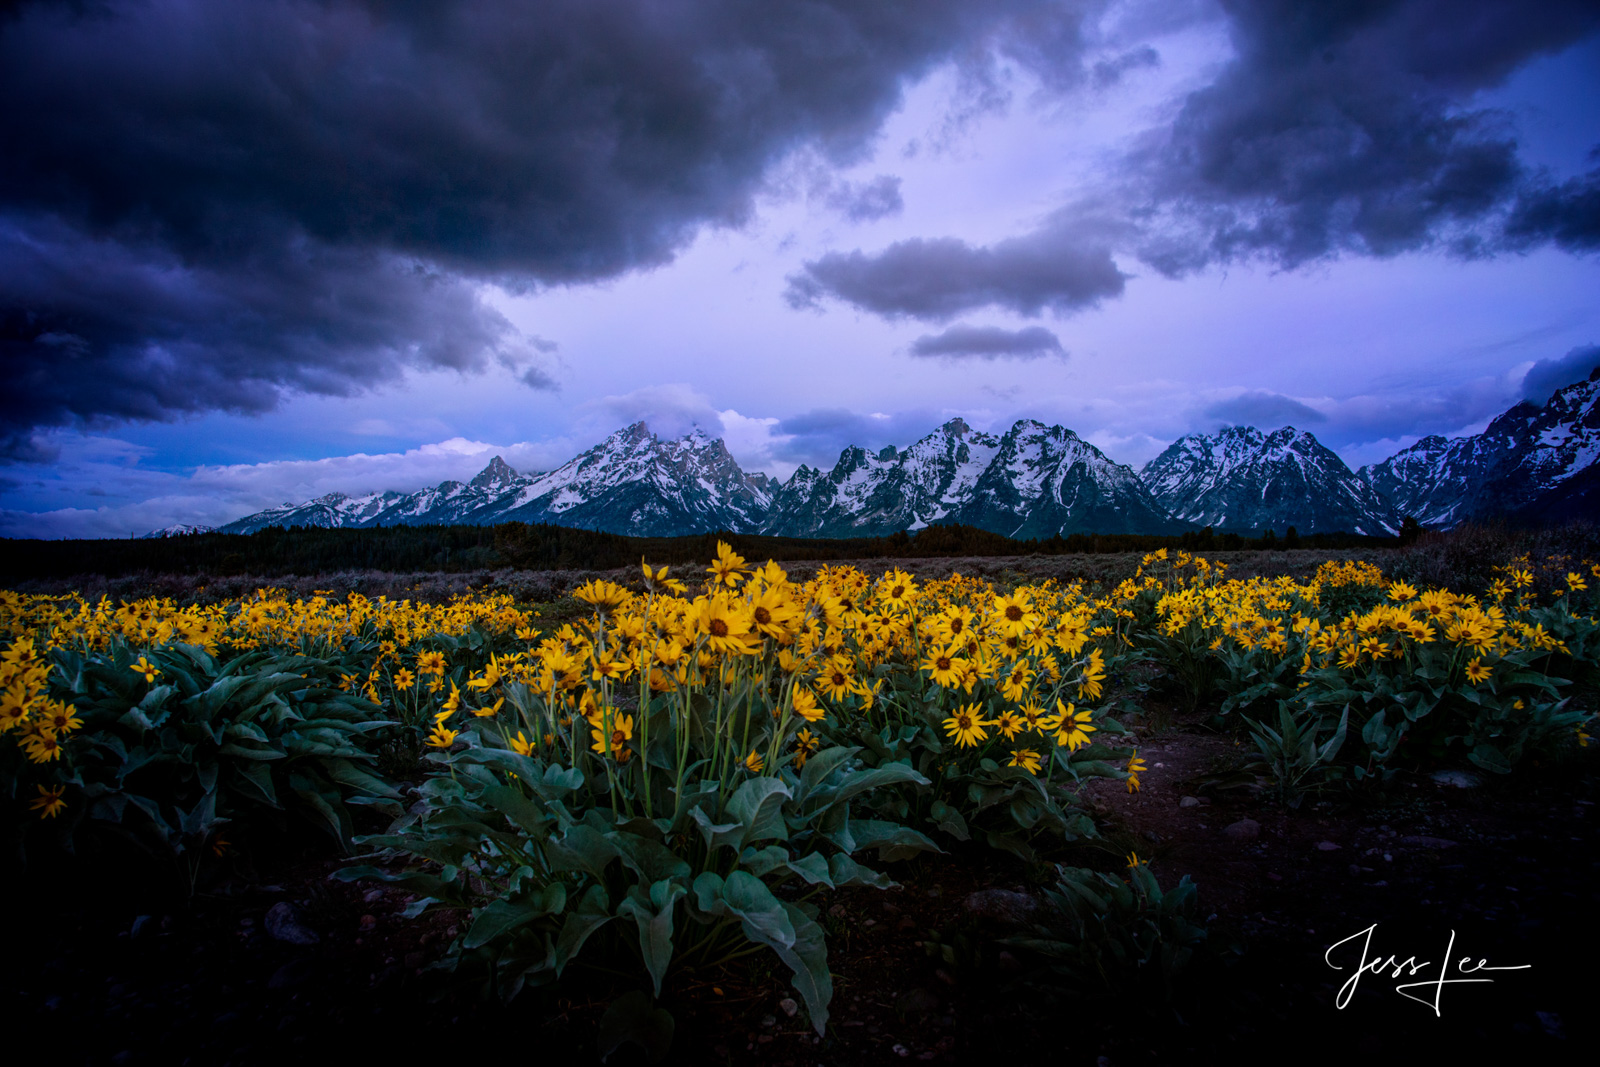 Fine Art Limited Edition of 250 Exclusive high-resolution Museum Quality Pictures of the Tetons.  They say spring storms bring...